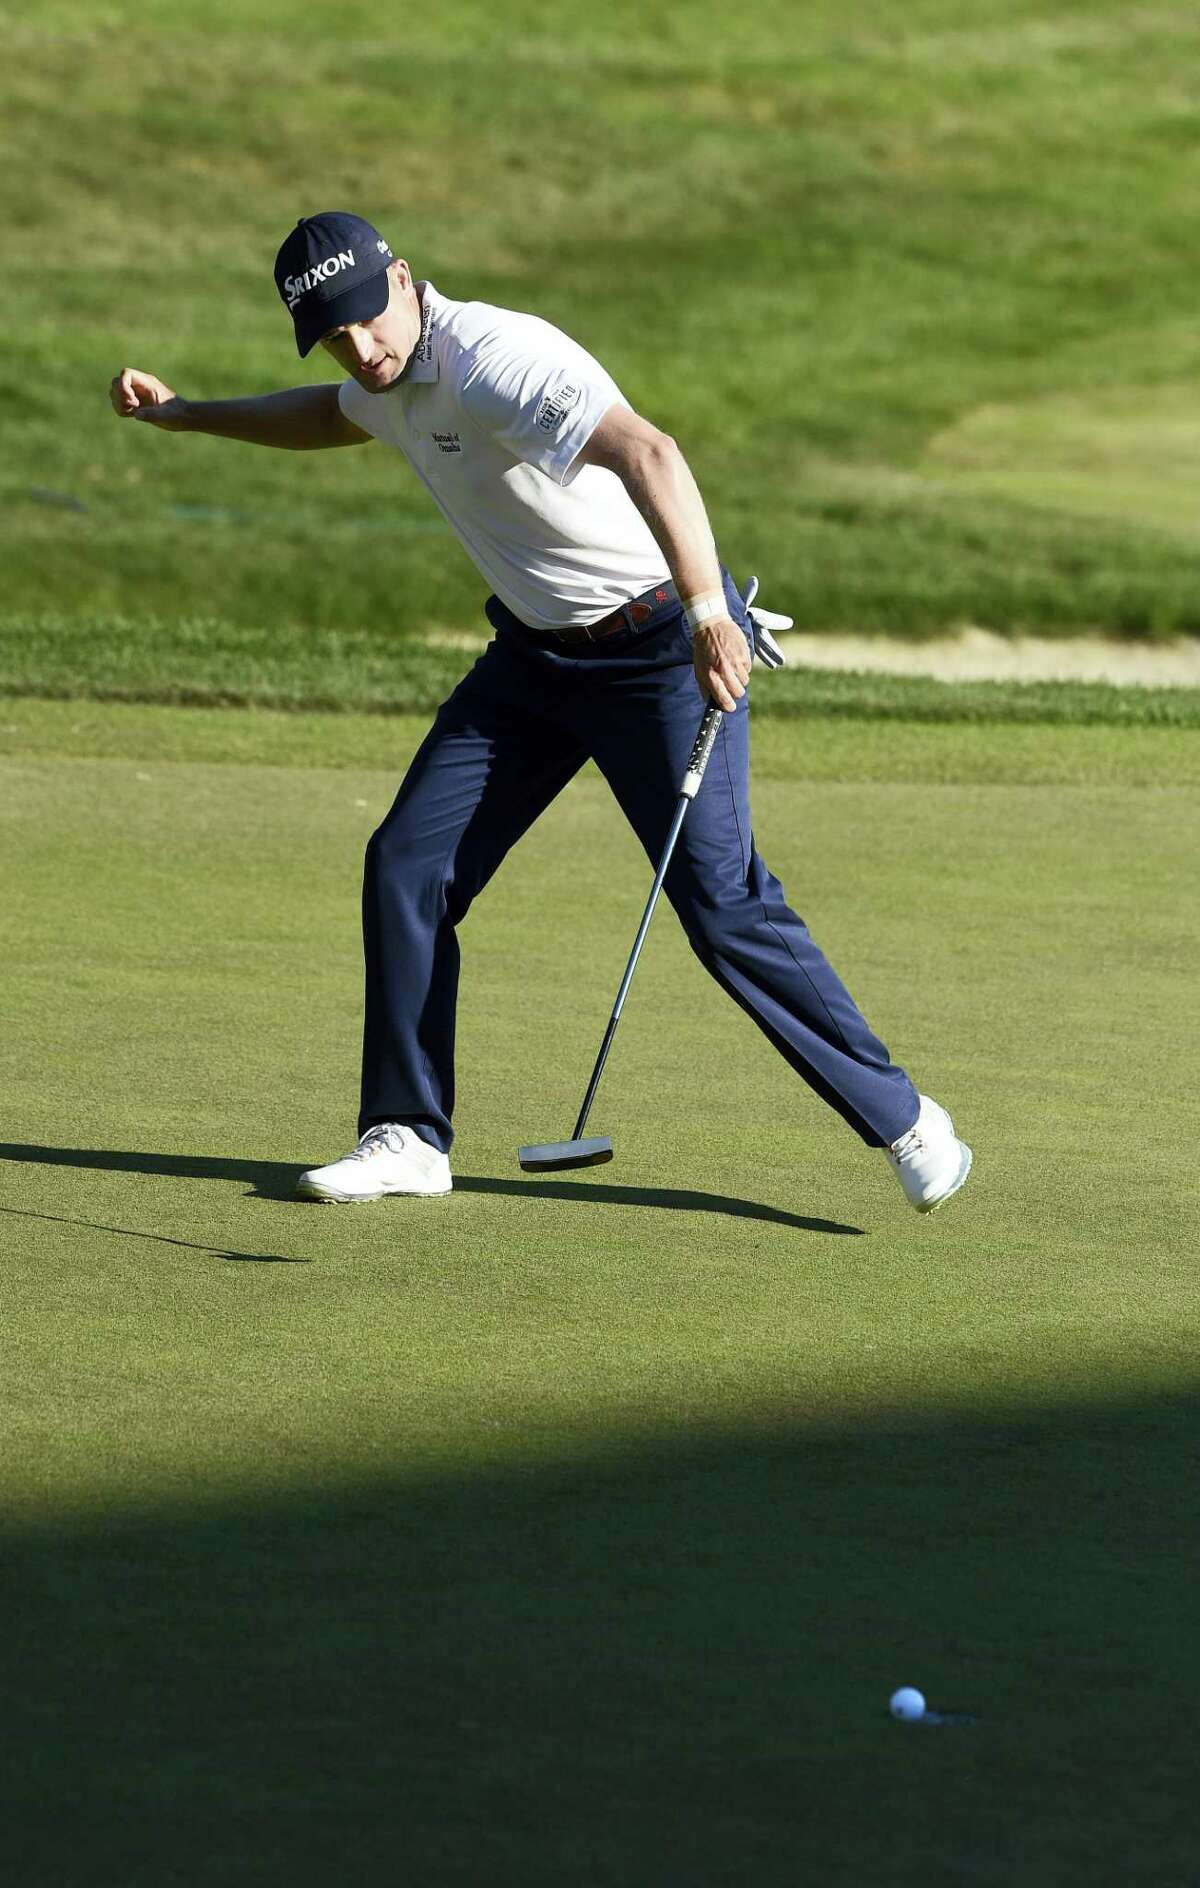 Russell Knox watches as his winning putt falls on the 18th hole during the final round of the Travelers Championship golf tournament in Cromwell last August.